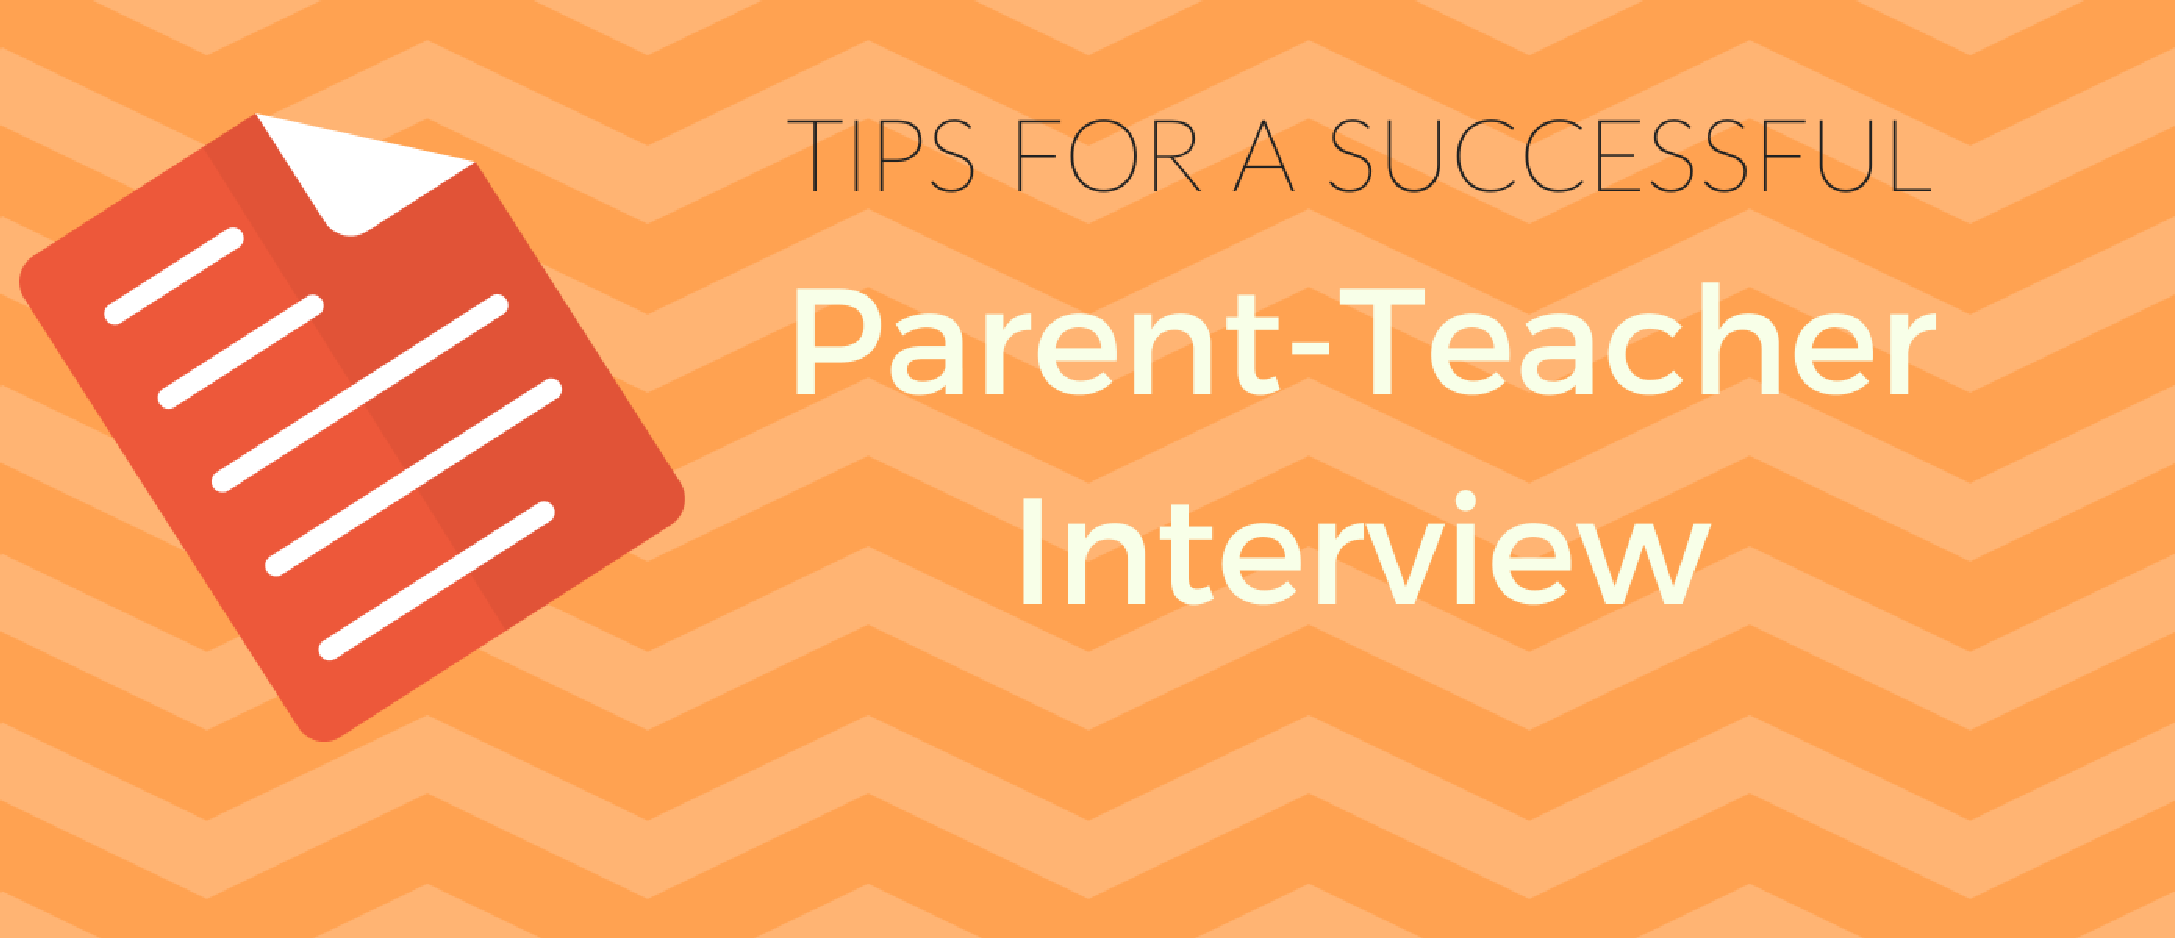 Tips for a Successful Parent-Teacher Interview (1)